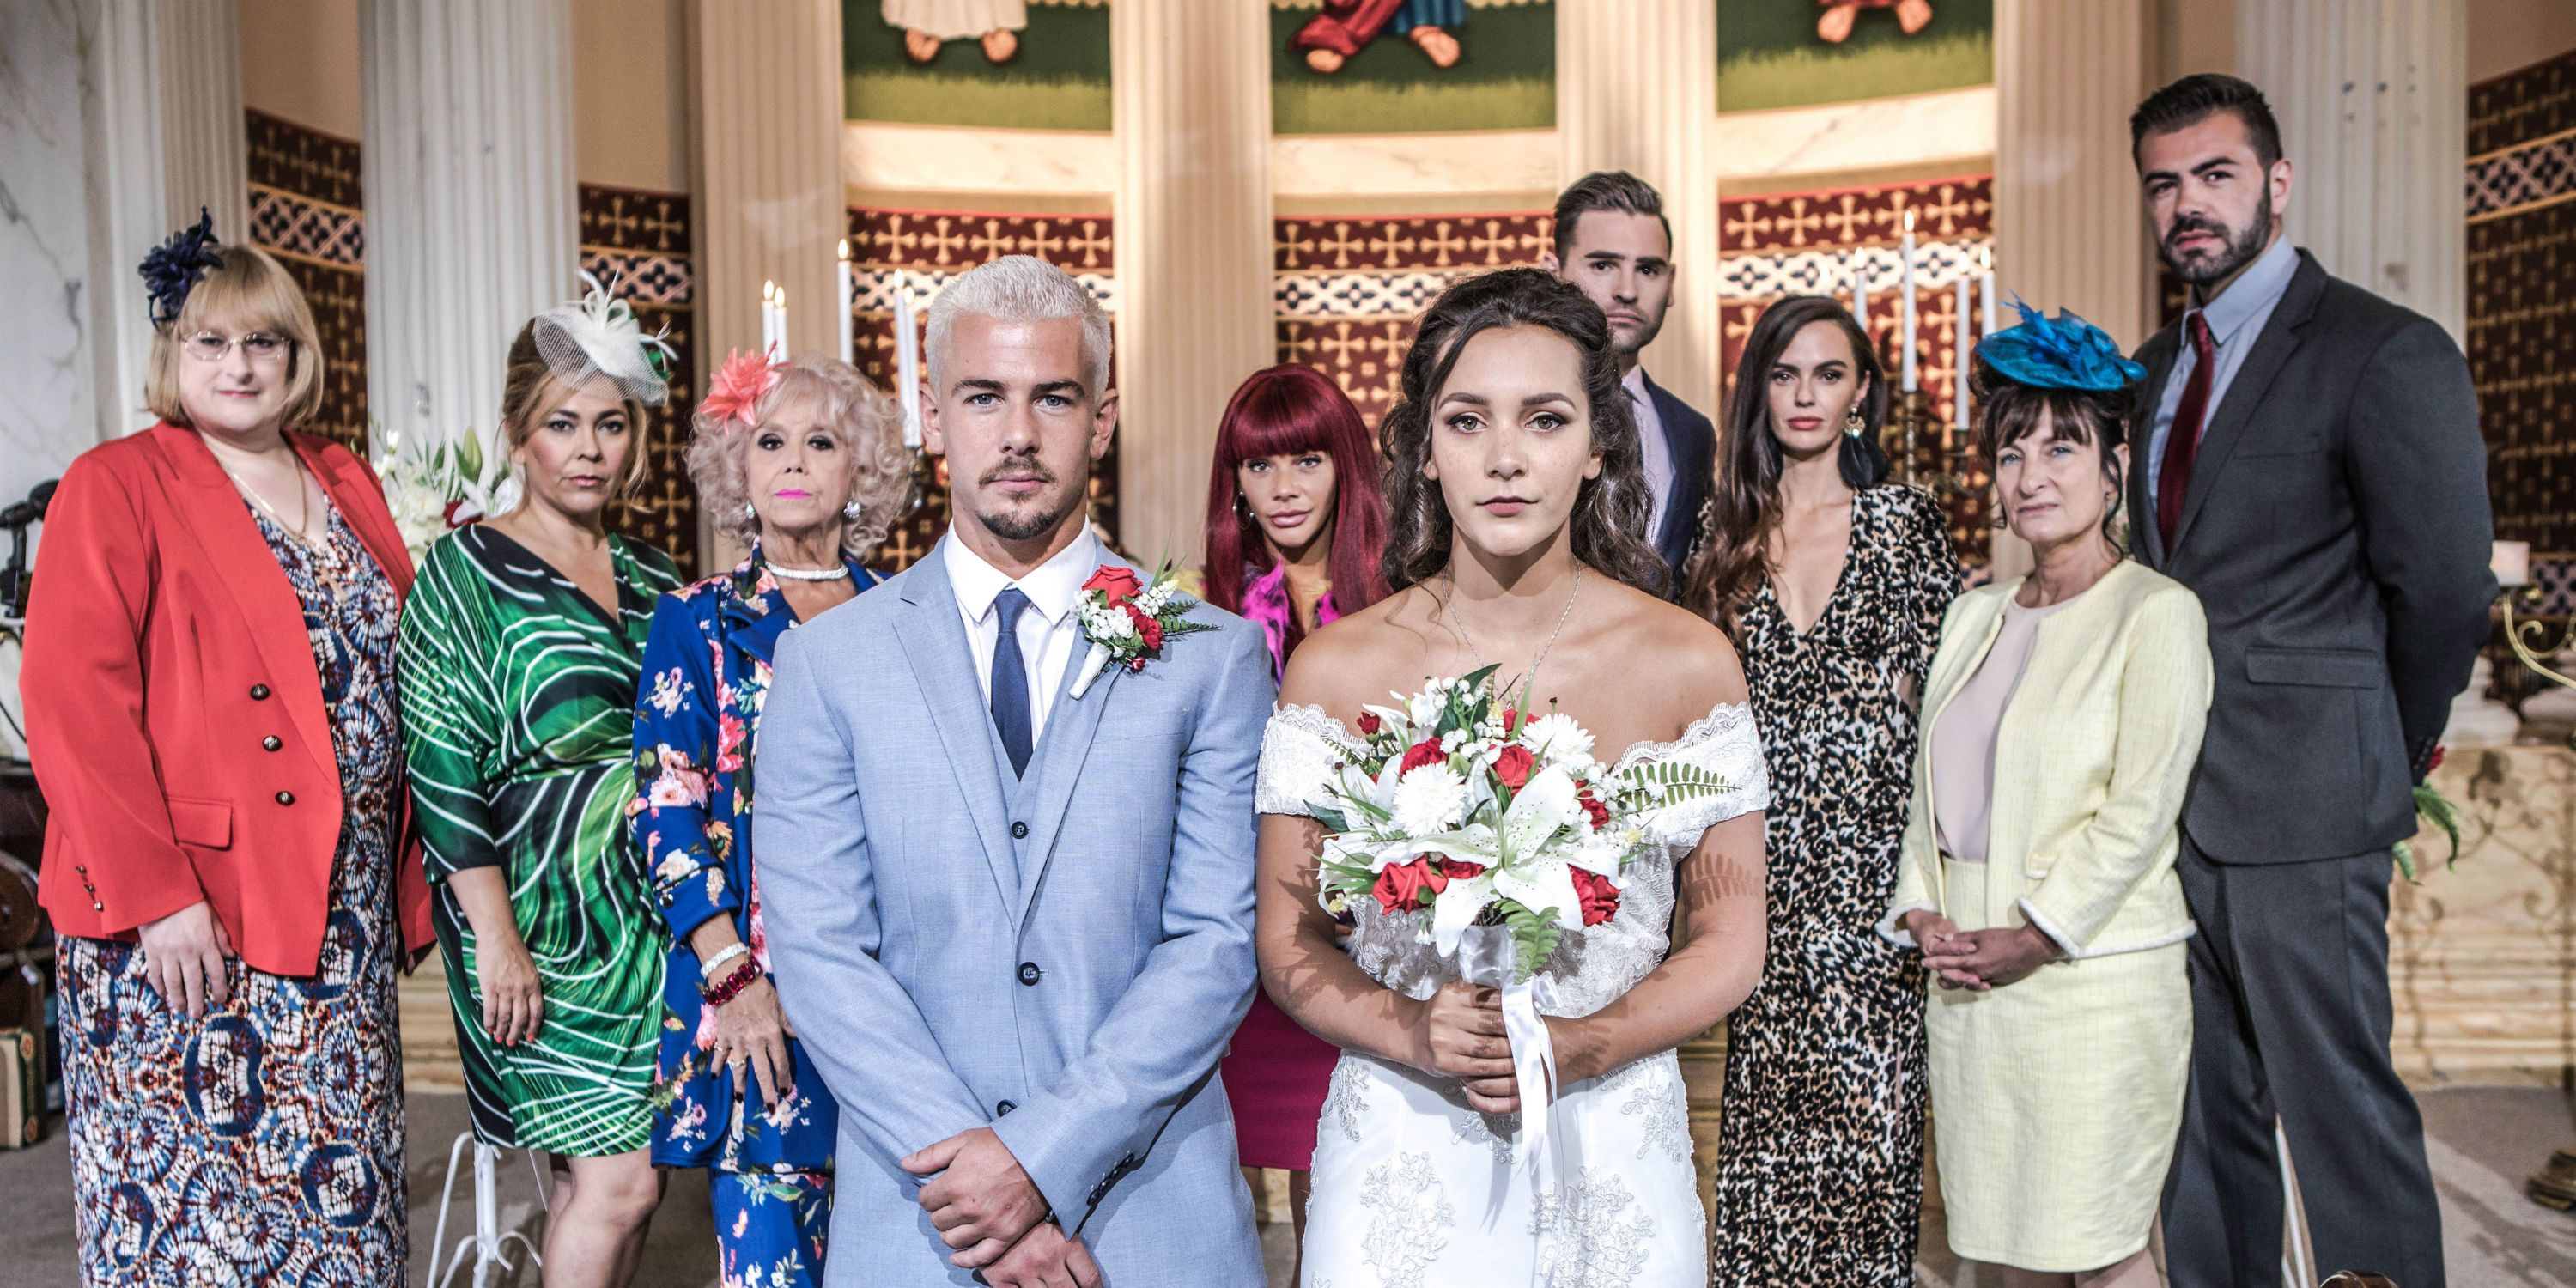 Cleo McQueen and Joel Dexter's wedding day arrives in Hollyoaks